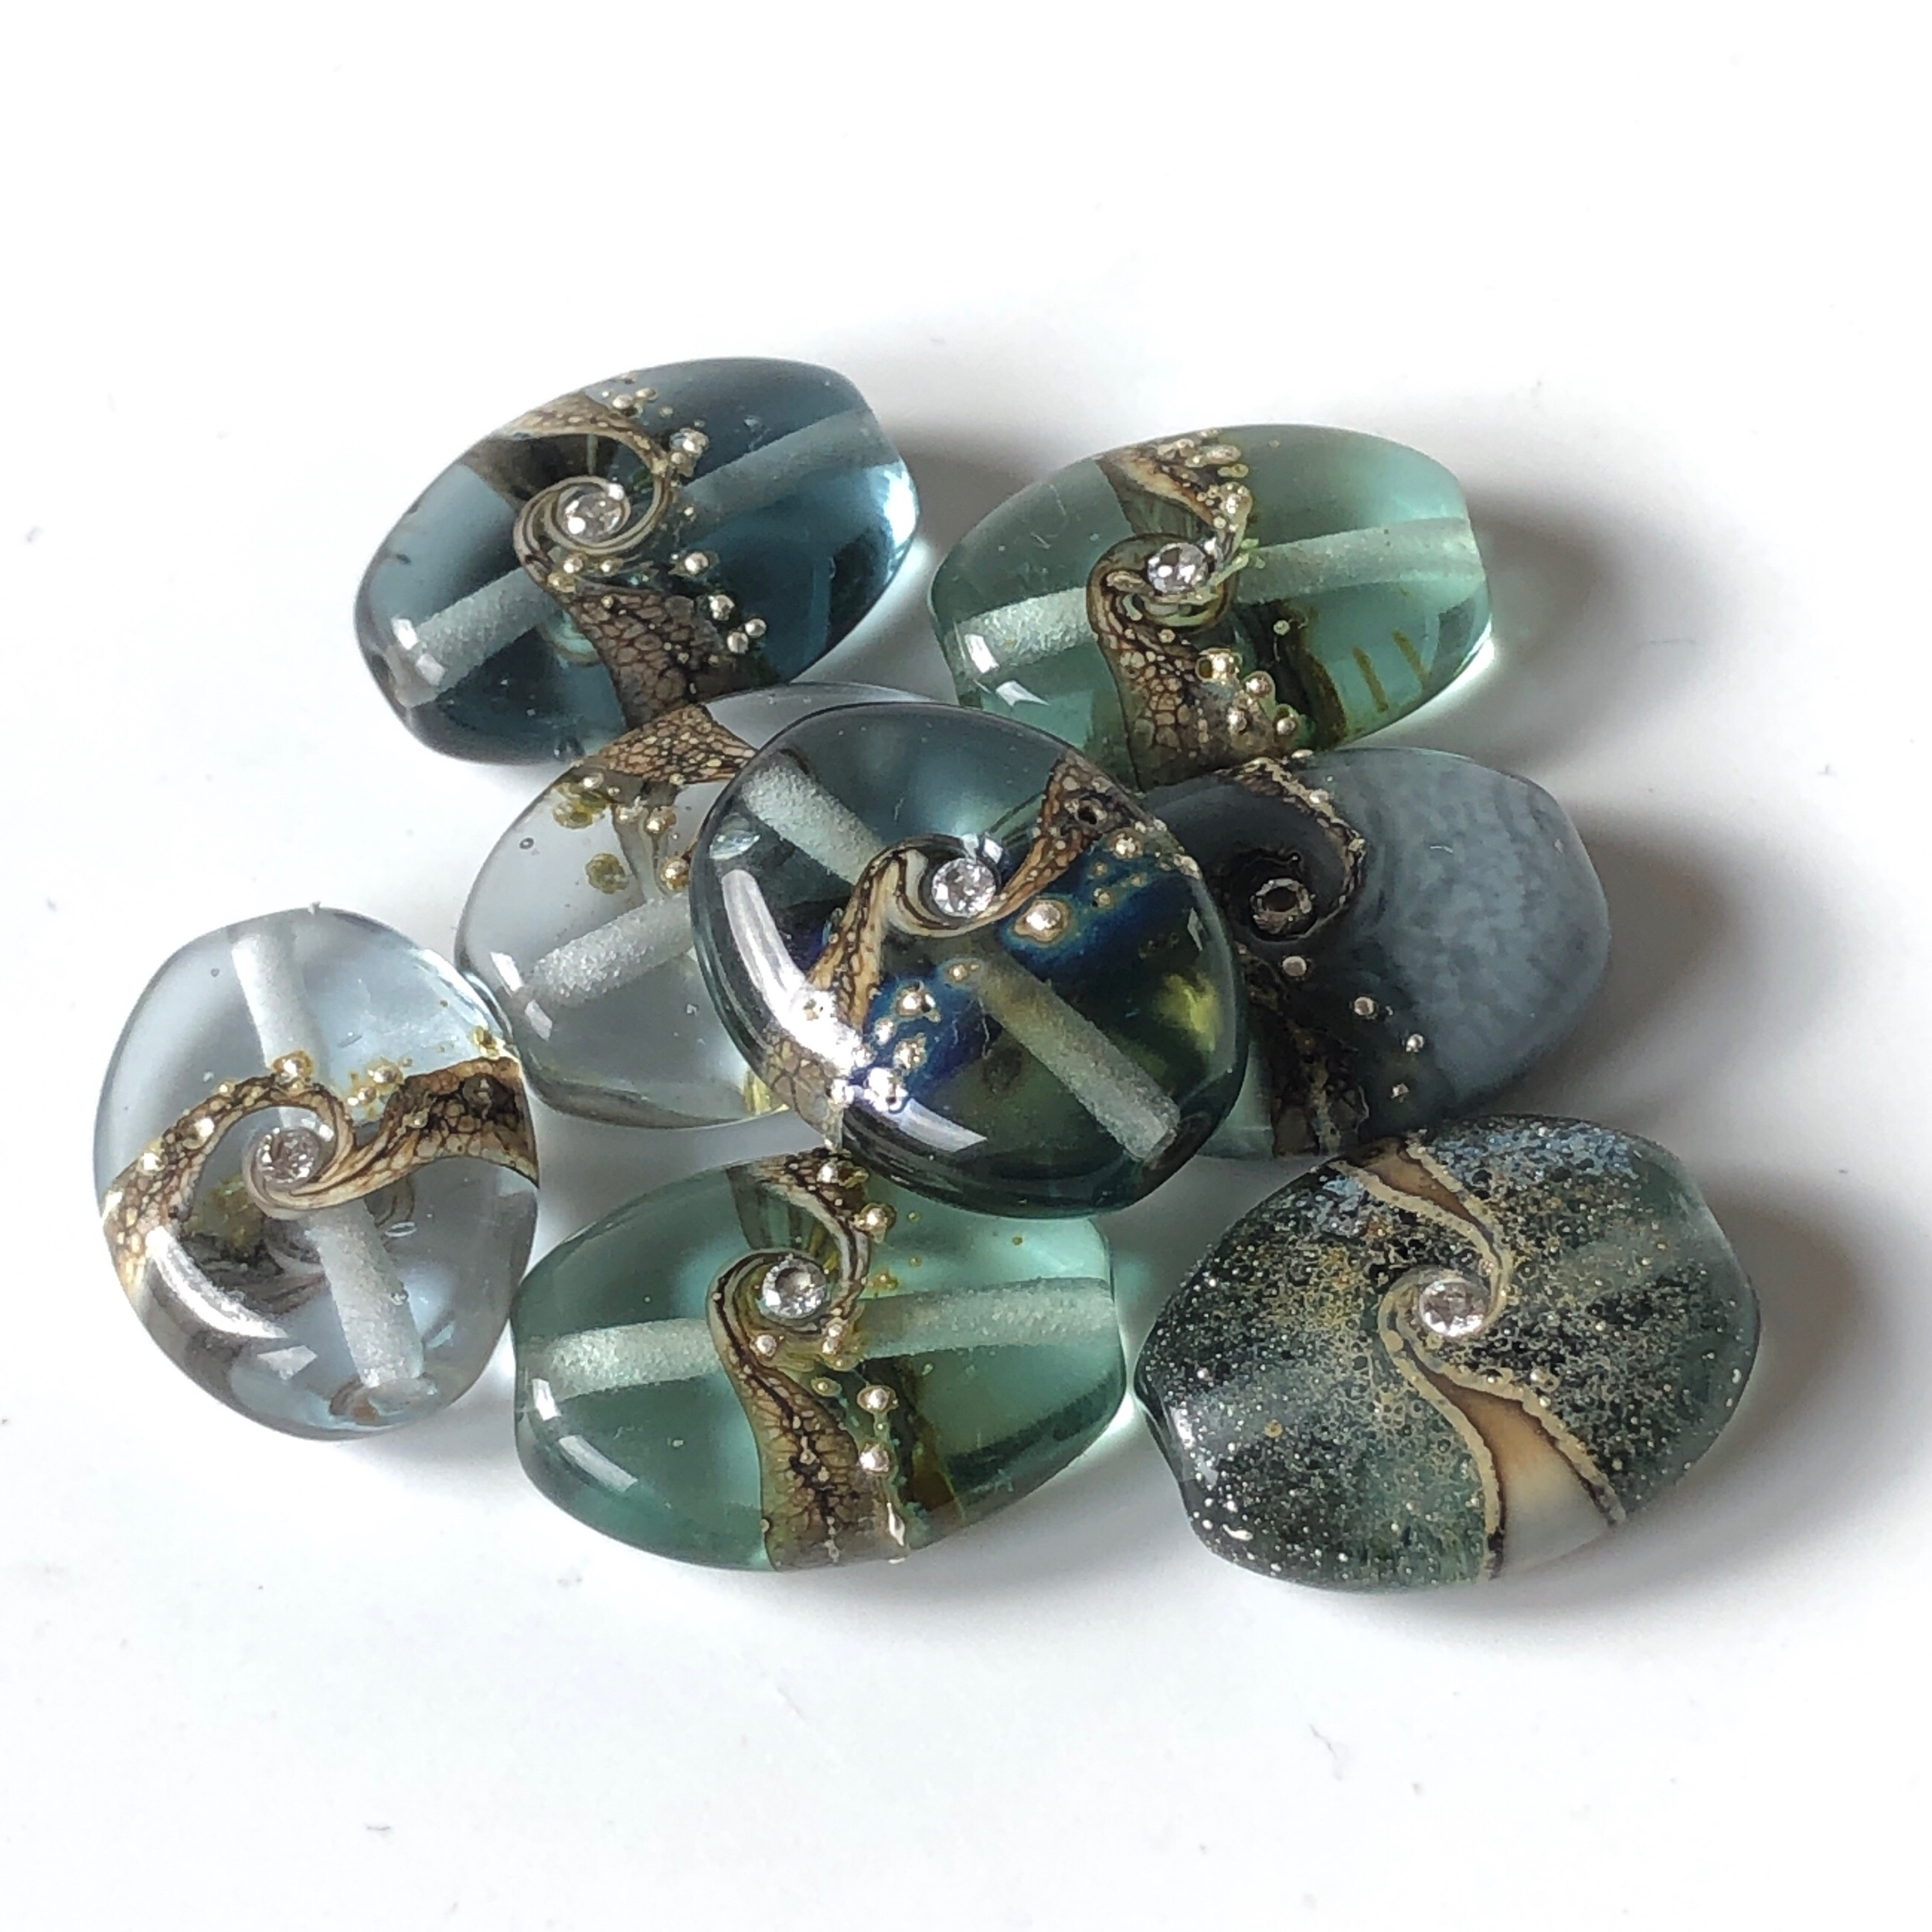 Grey lampwork glass beads with cubic zirconia set in the middle